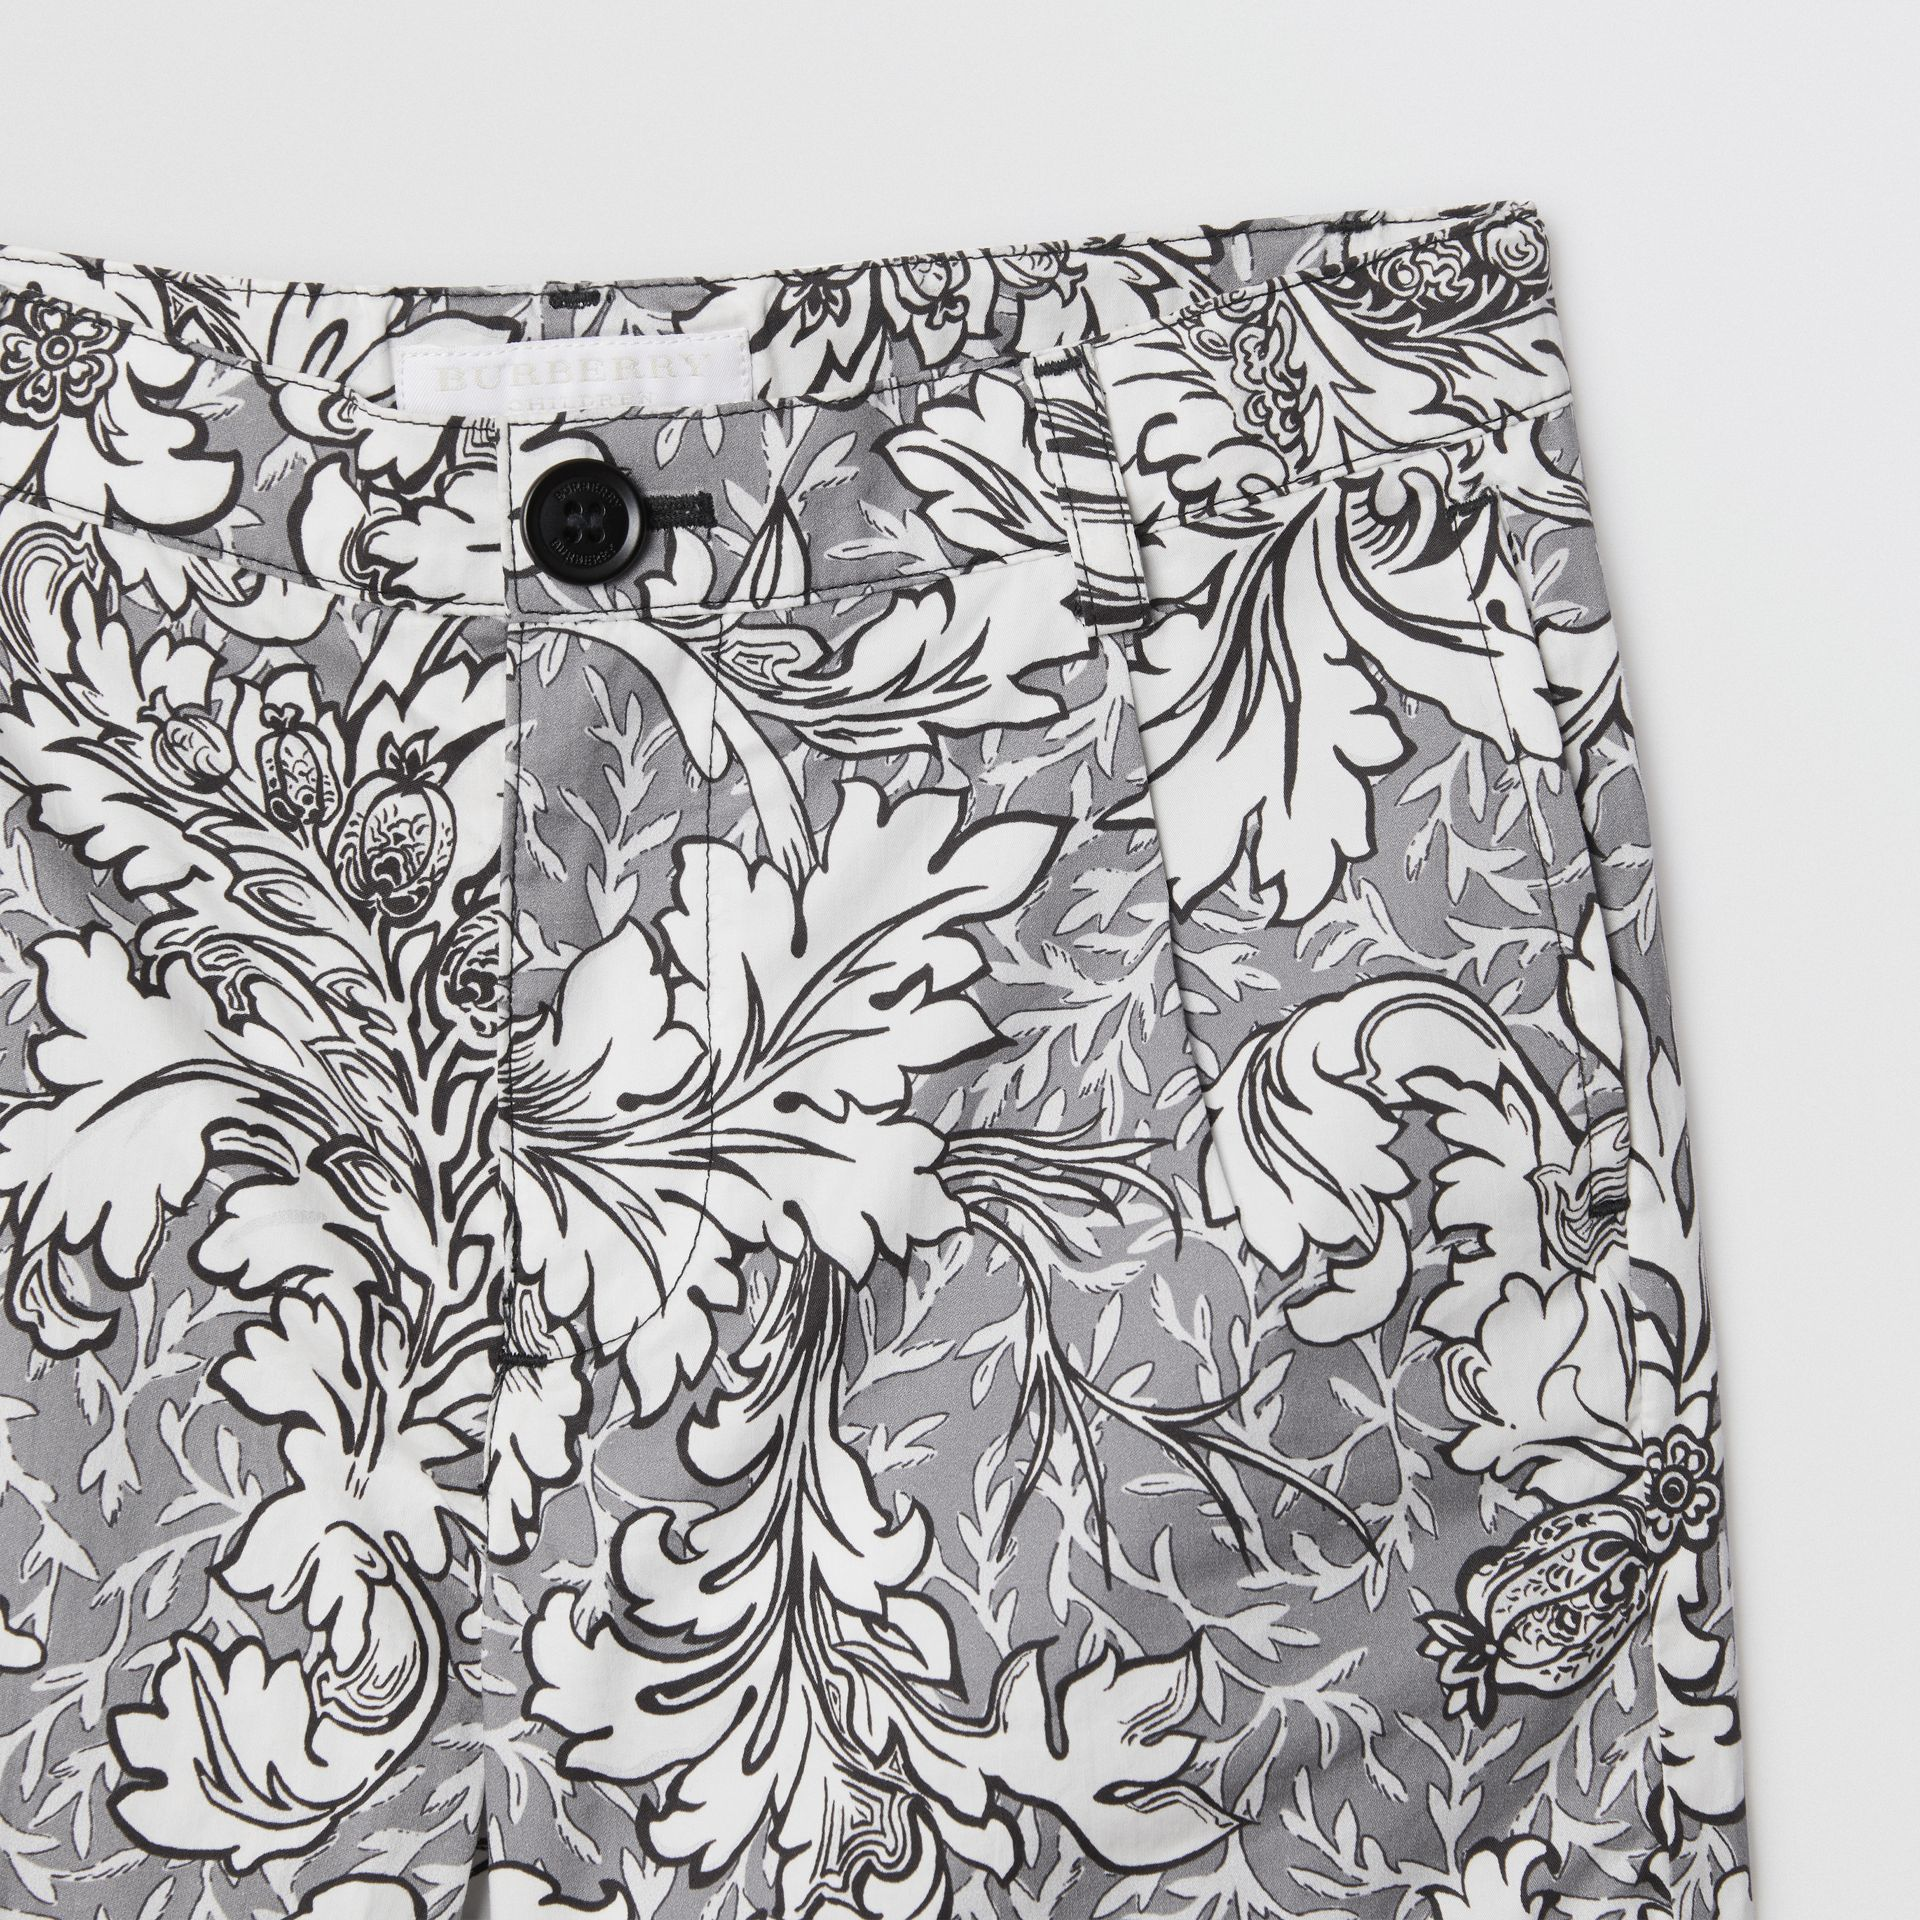 Floral Print Cotton Tailored Shorts in Mid Grey Melange | Burberry - gallery image 4